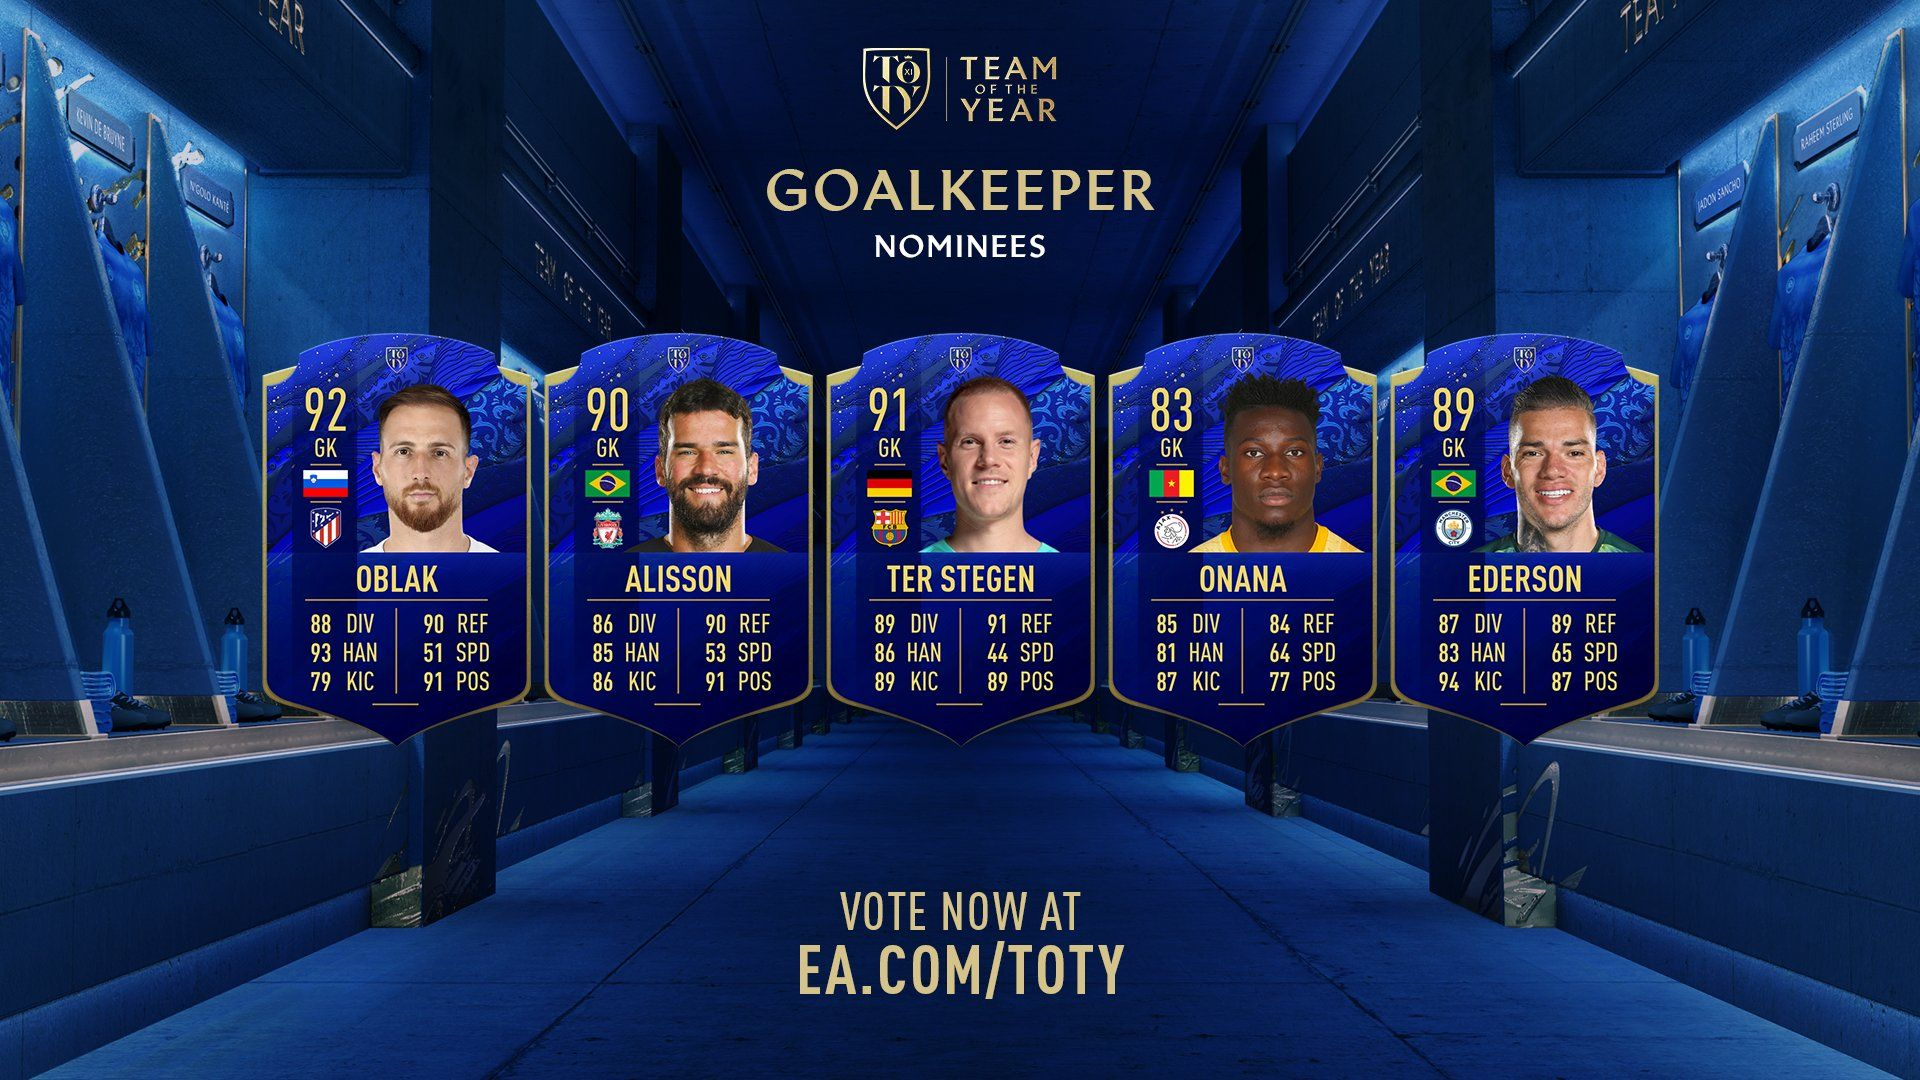 FIFA 20 Team of the Year Goalkeepers